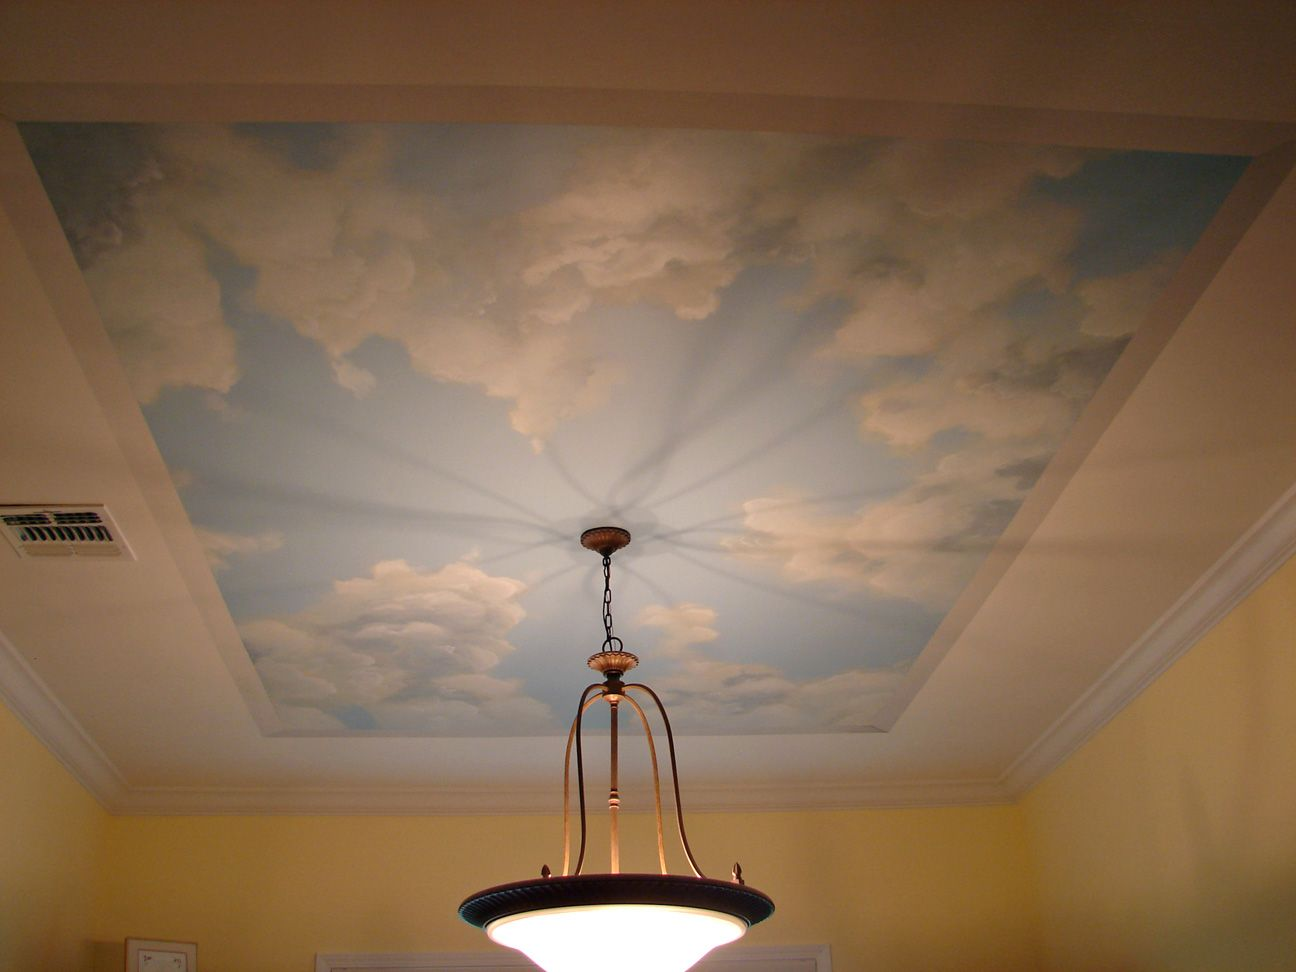 Painting Bedroom Full View Of A Hand Painted Dining Room Ceiling Sky Cloud Mural